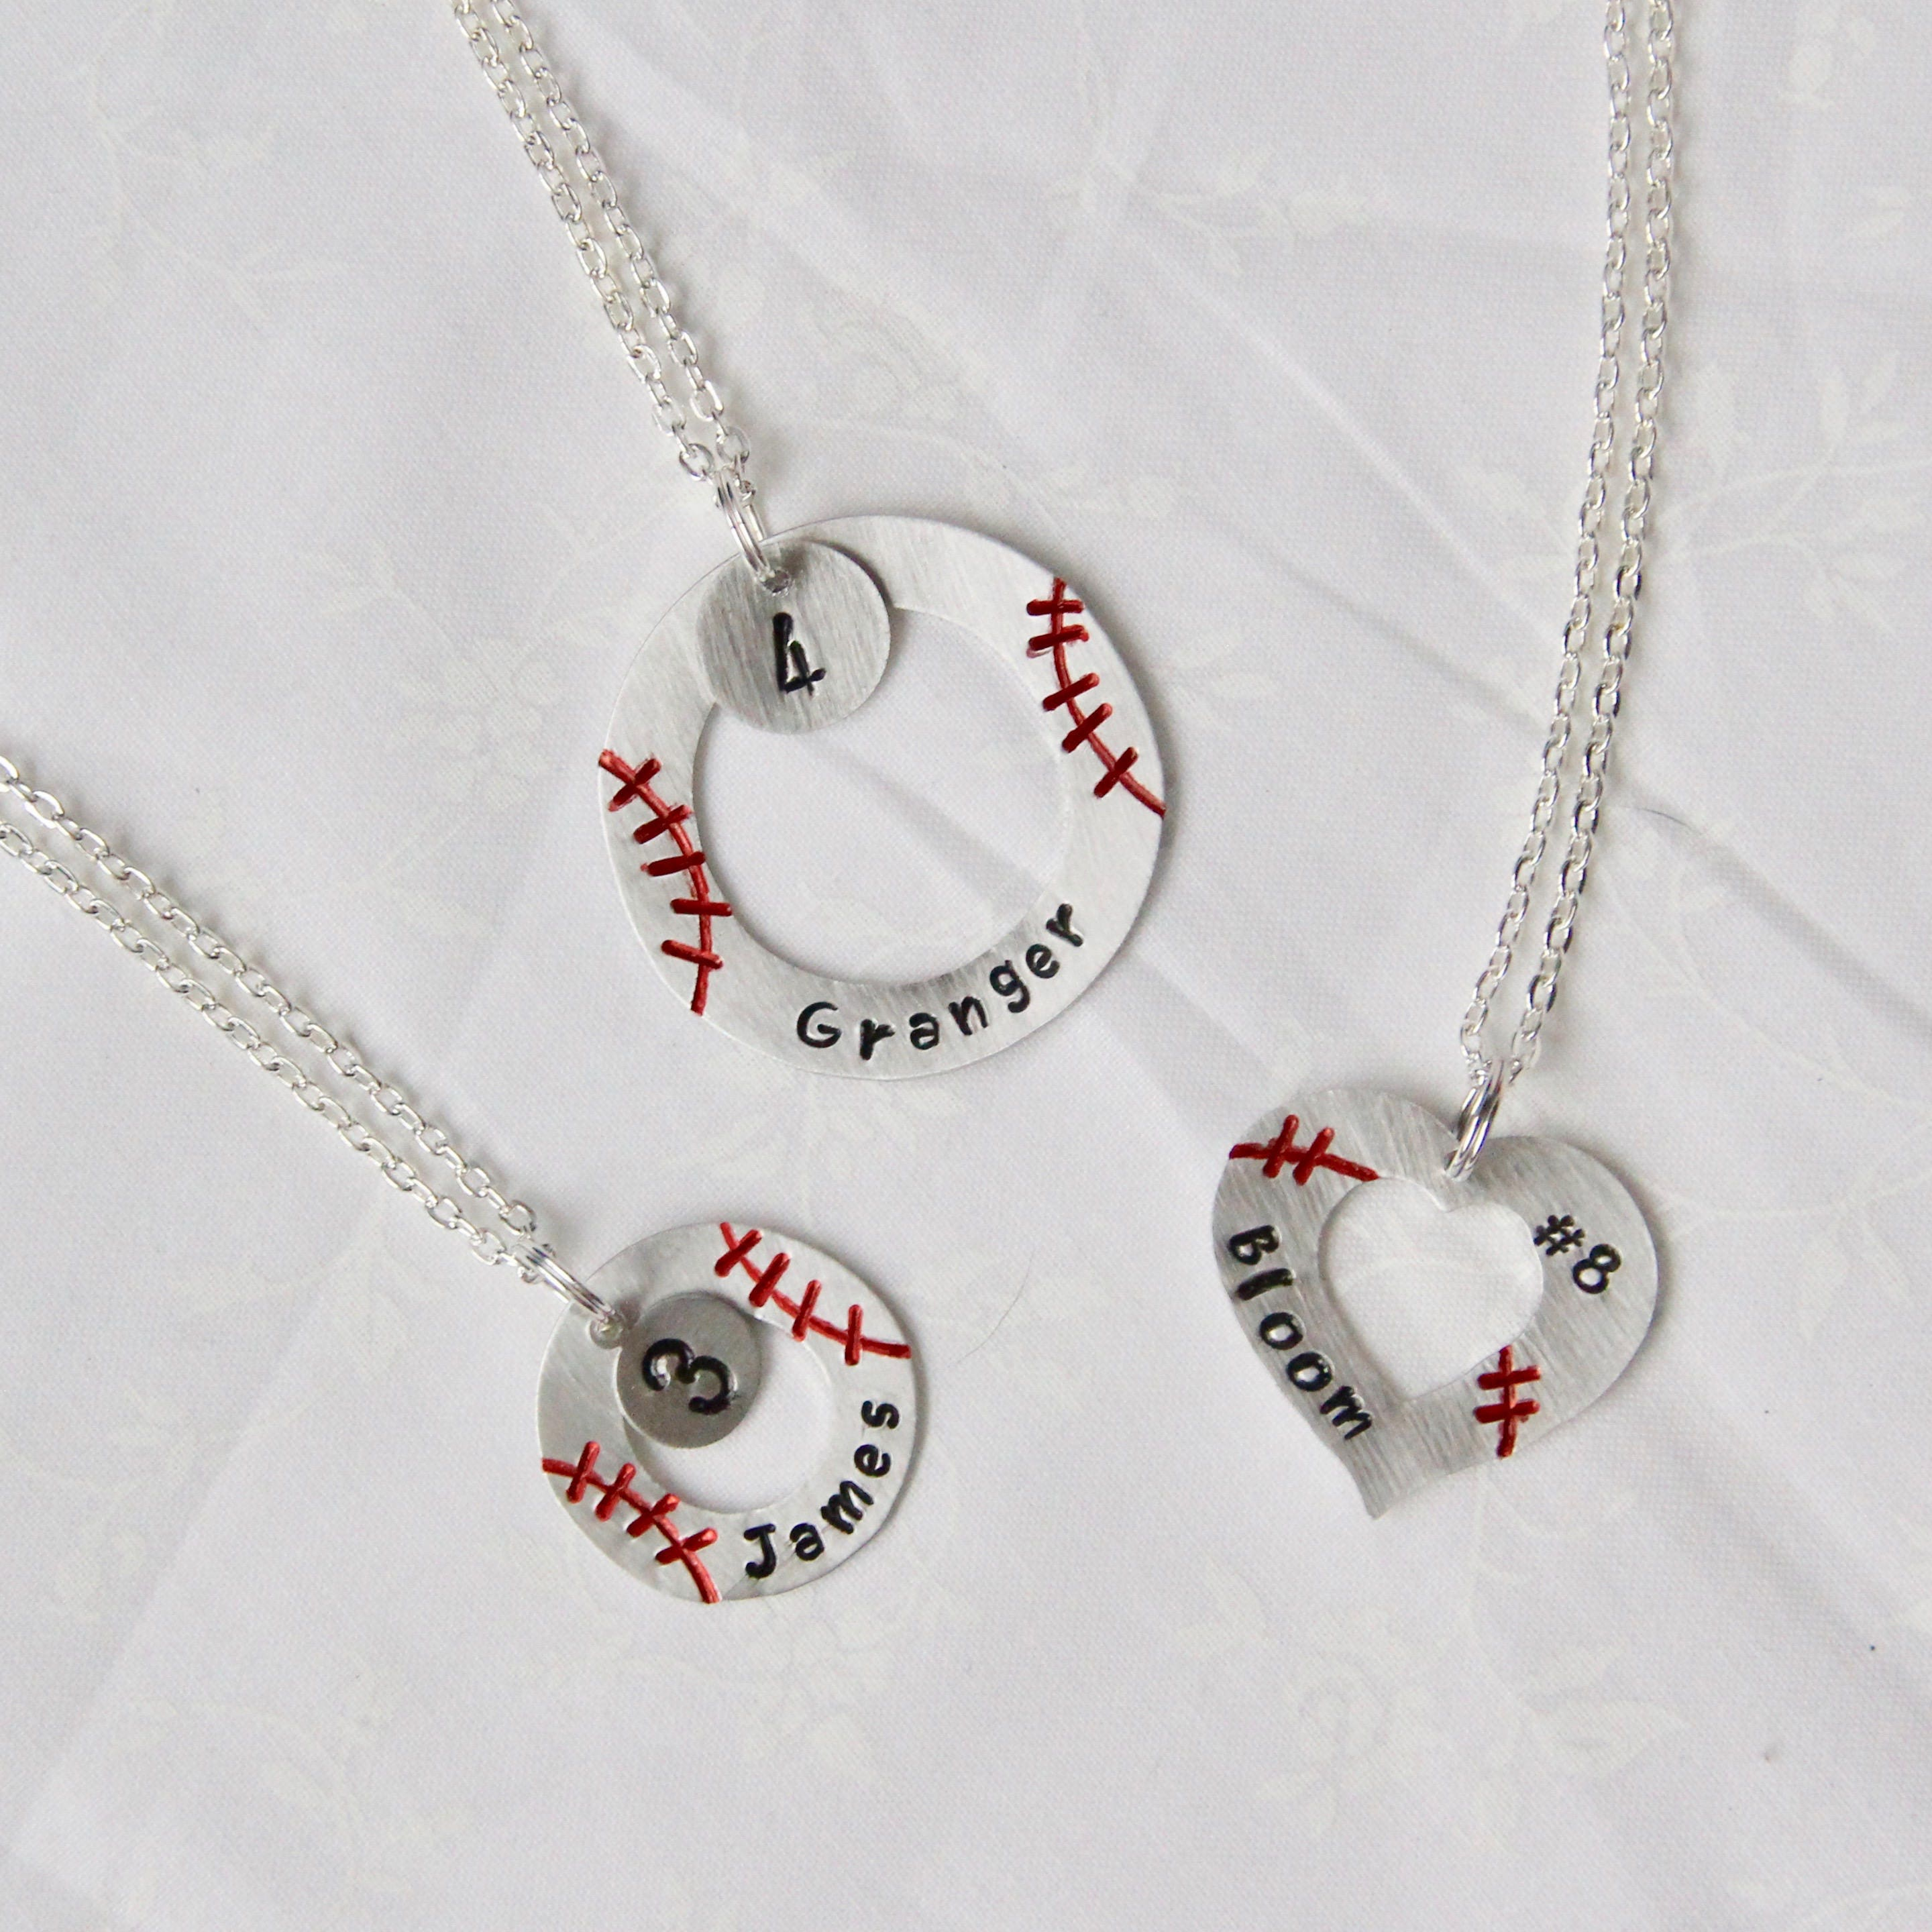 necklace tinksjewelry pendant products sports silver girlfriend baseball